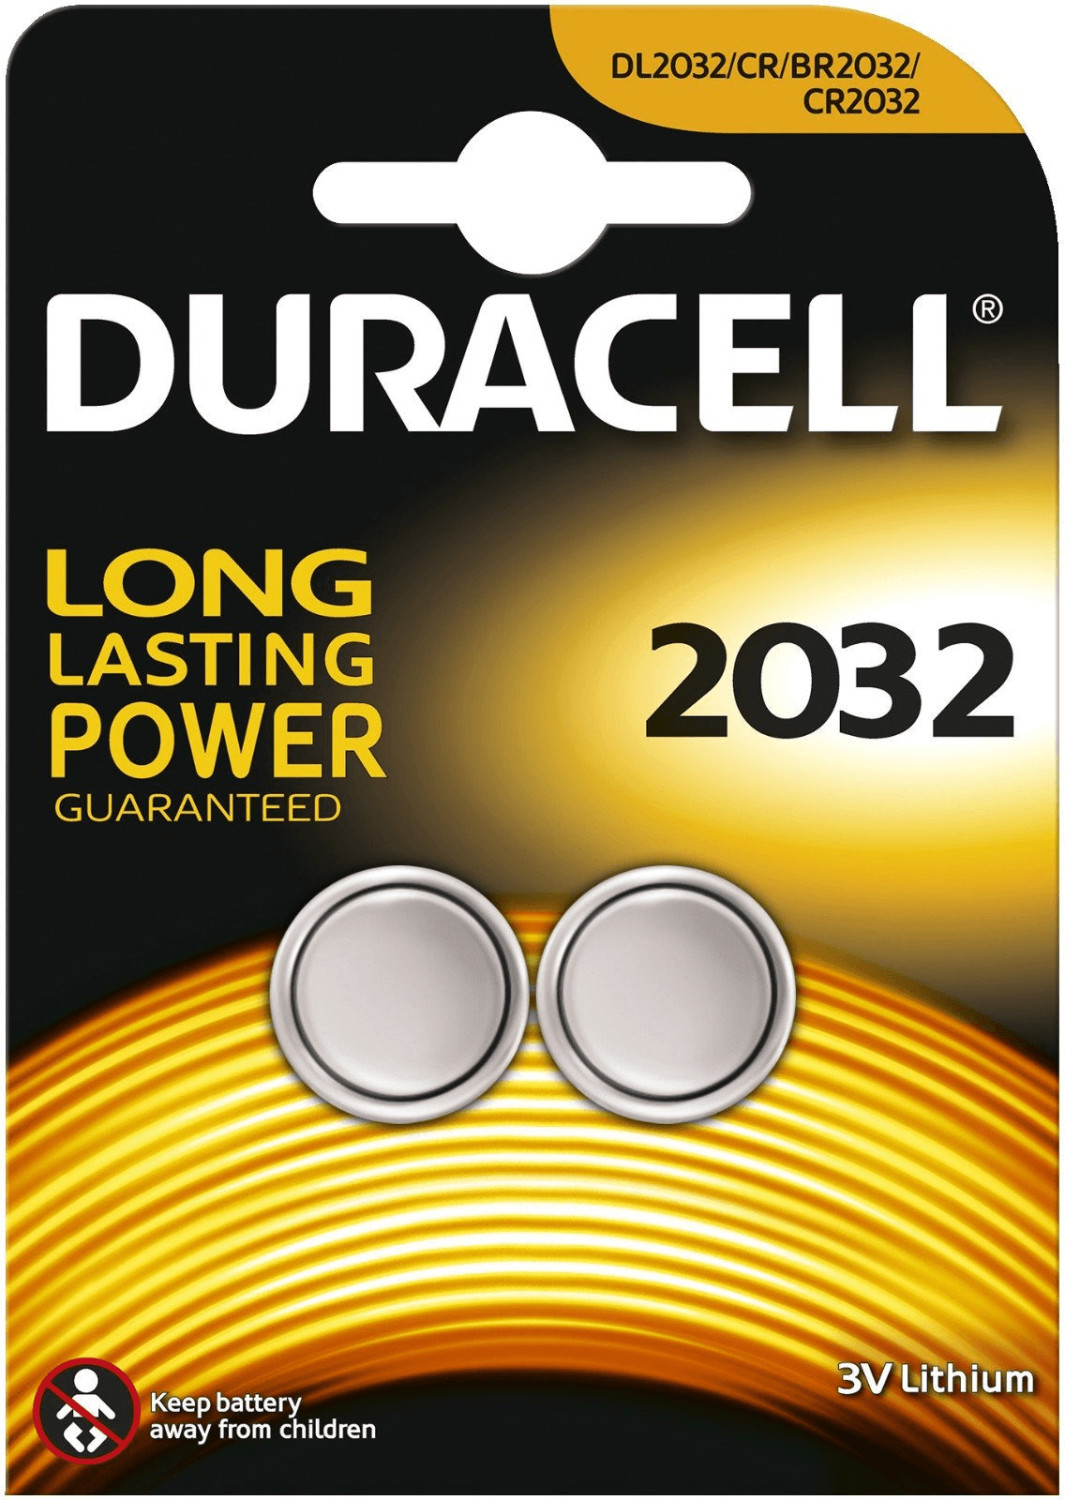 Image of Duracell 203921